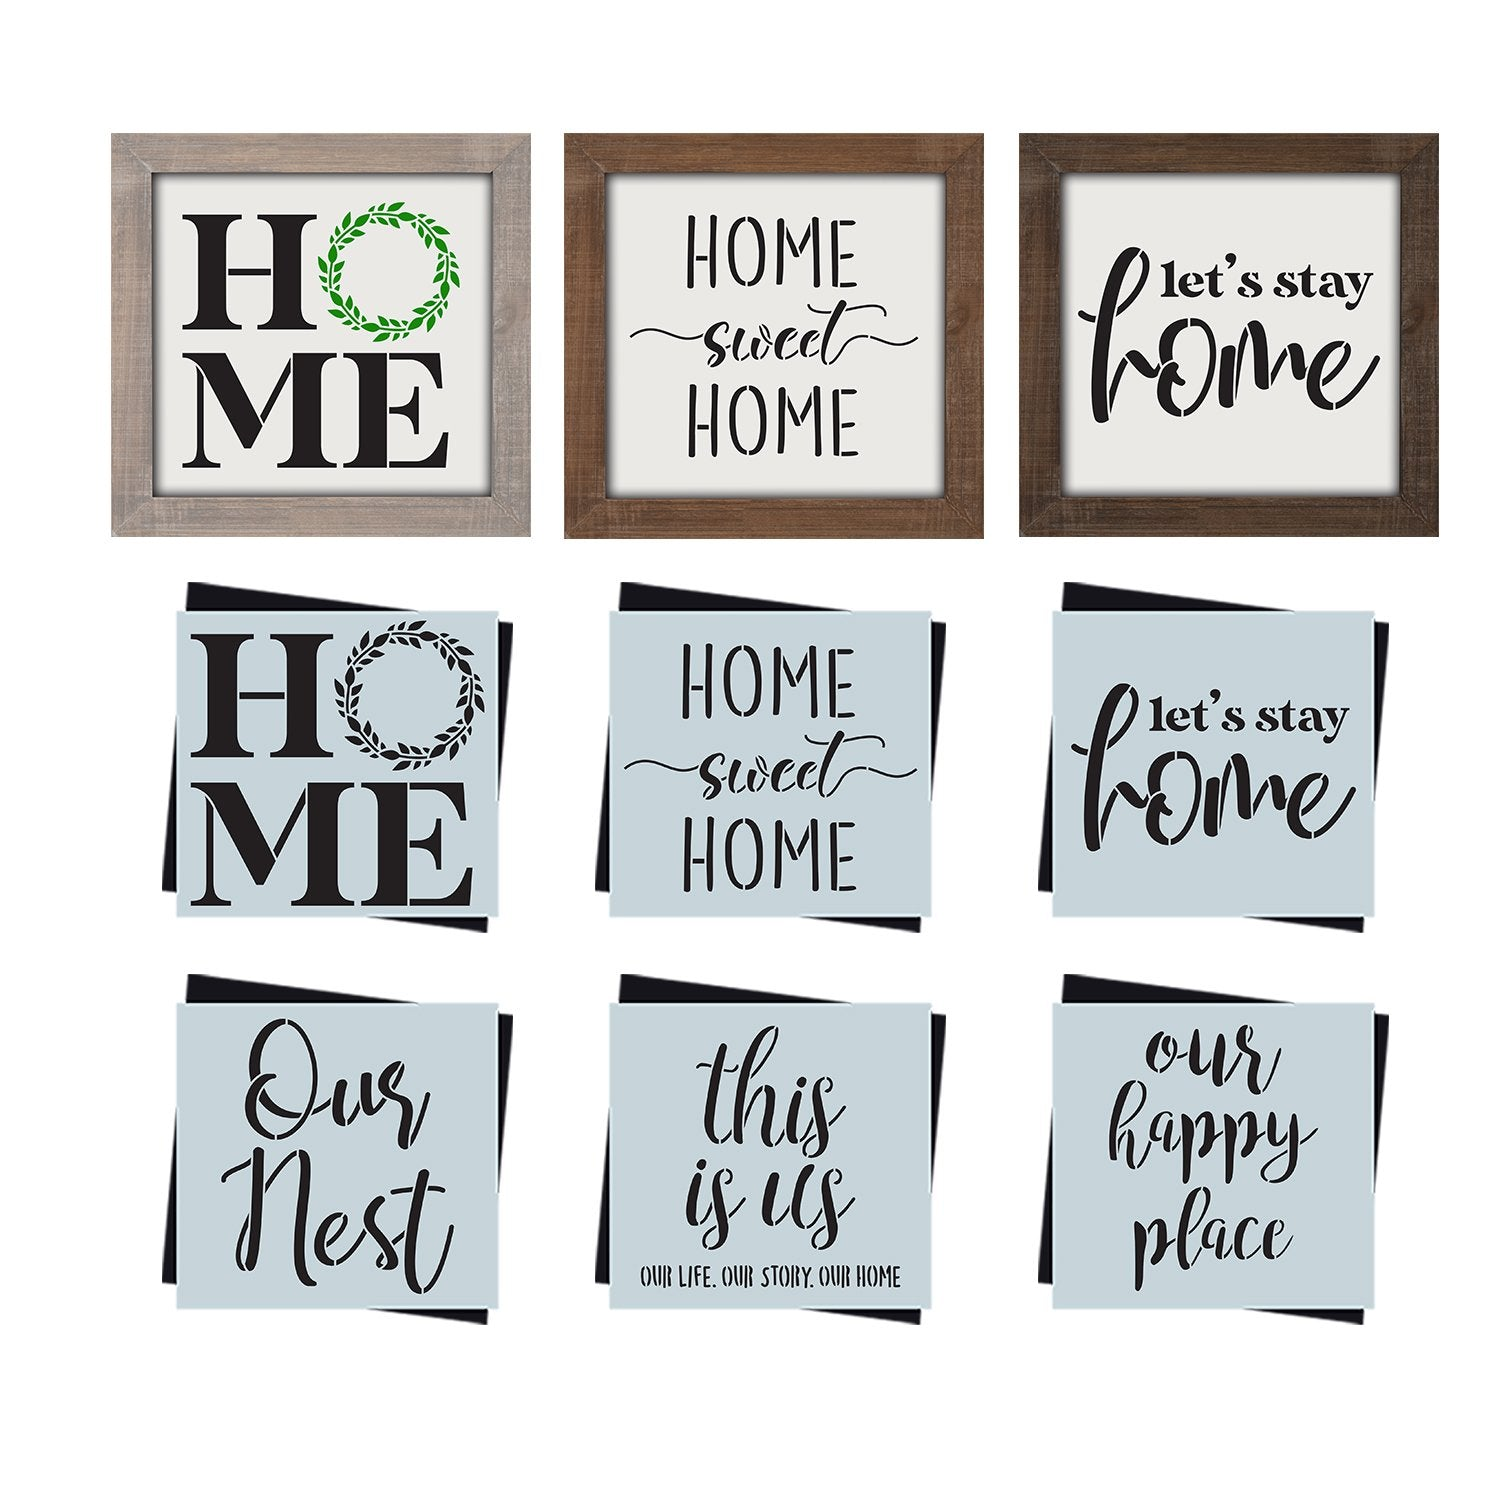 DIY reusable farmhouse home decor stencil,HOME mini sign stencil, home sweet home mini sign stencil, let's stay home mini sign, Our Nest mini sign stencil, this is us our life. our story. our home mini sign stencil, our happy place mini sign stencil, stencil tiered tray signs, DIY home decor, modern farmhouse diy home decor, DIY small shelf sign